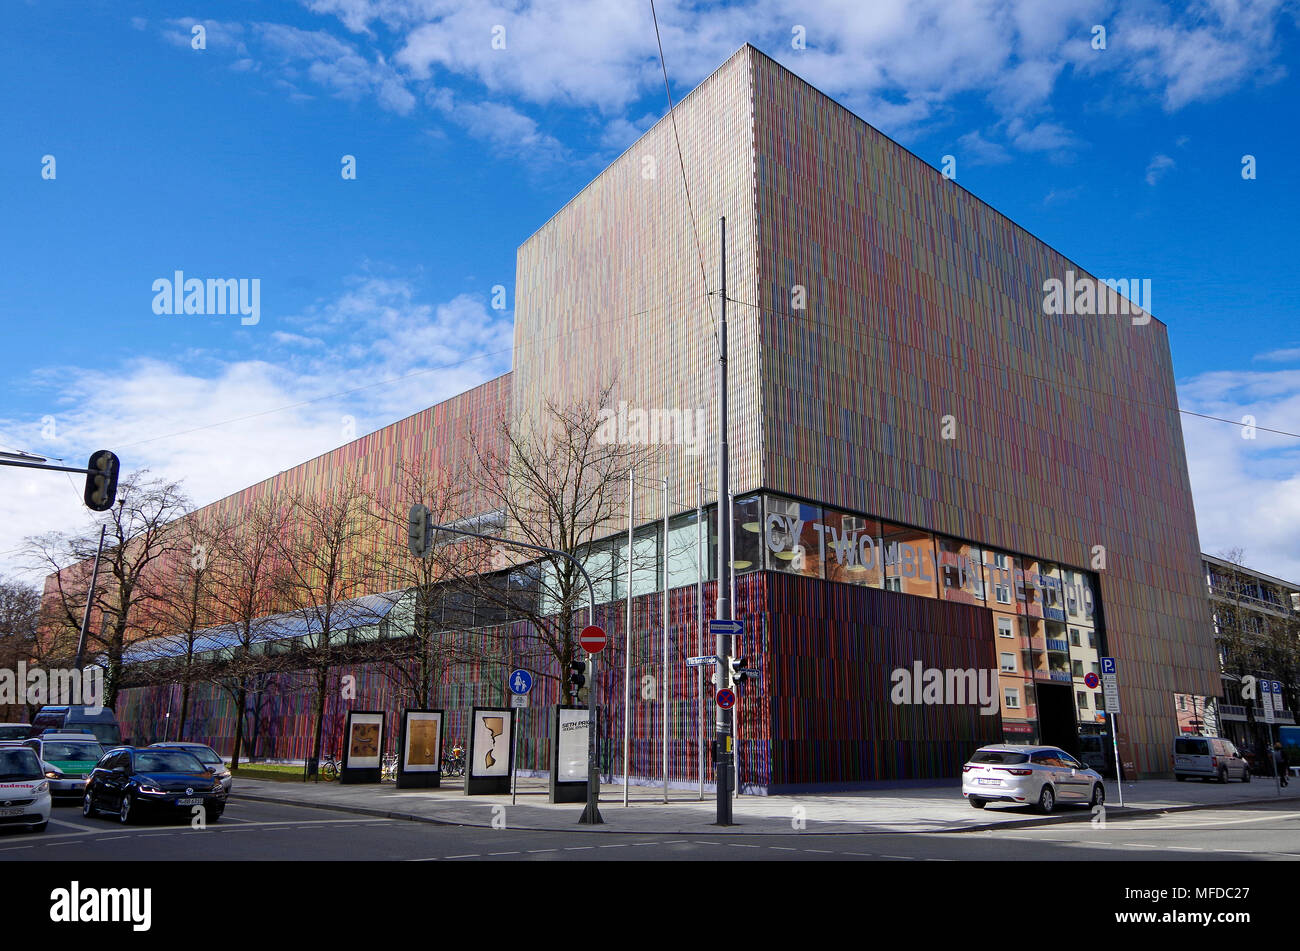 The Museum Brandhorst, in Munich, opened in 2009, housing collection of modern art, extraordinary multi-coloured facade, - Stock Image